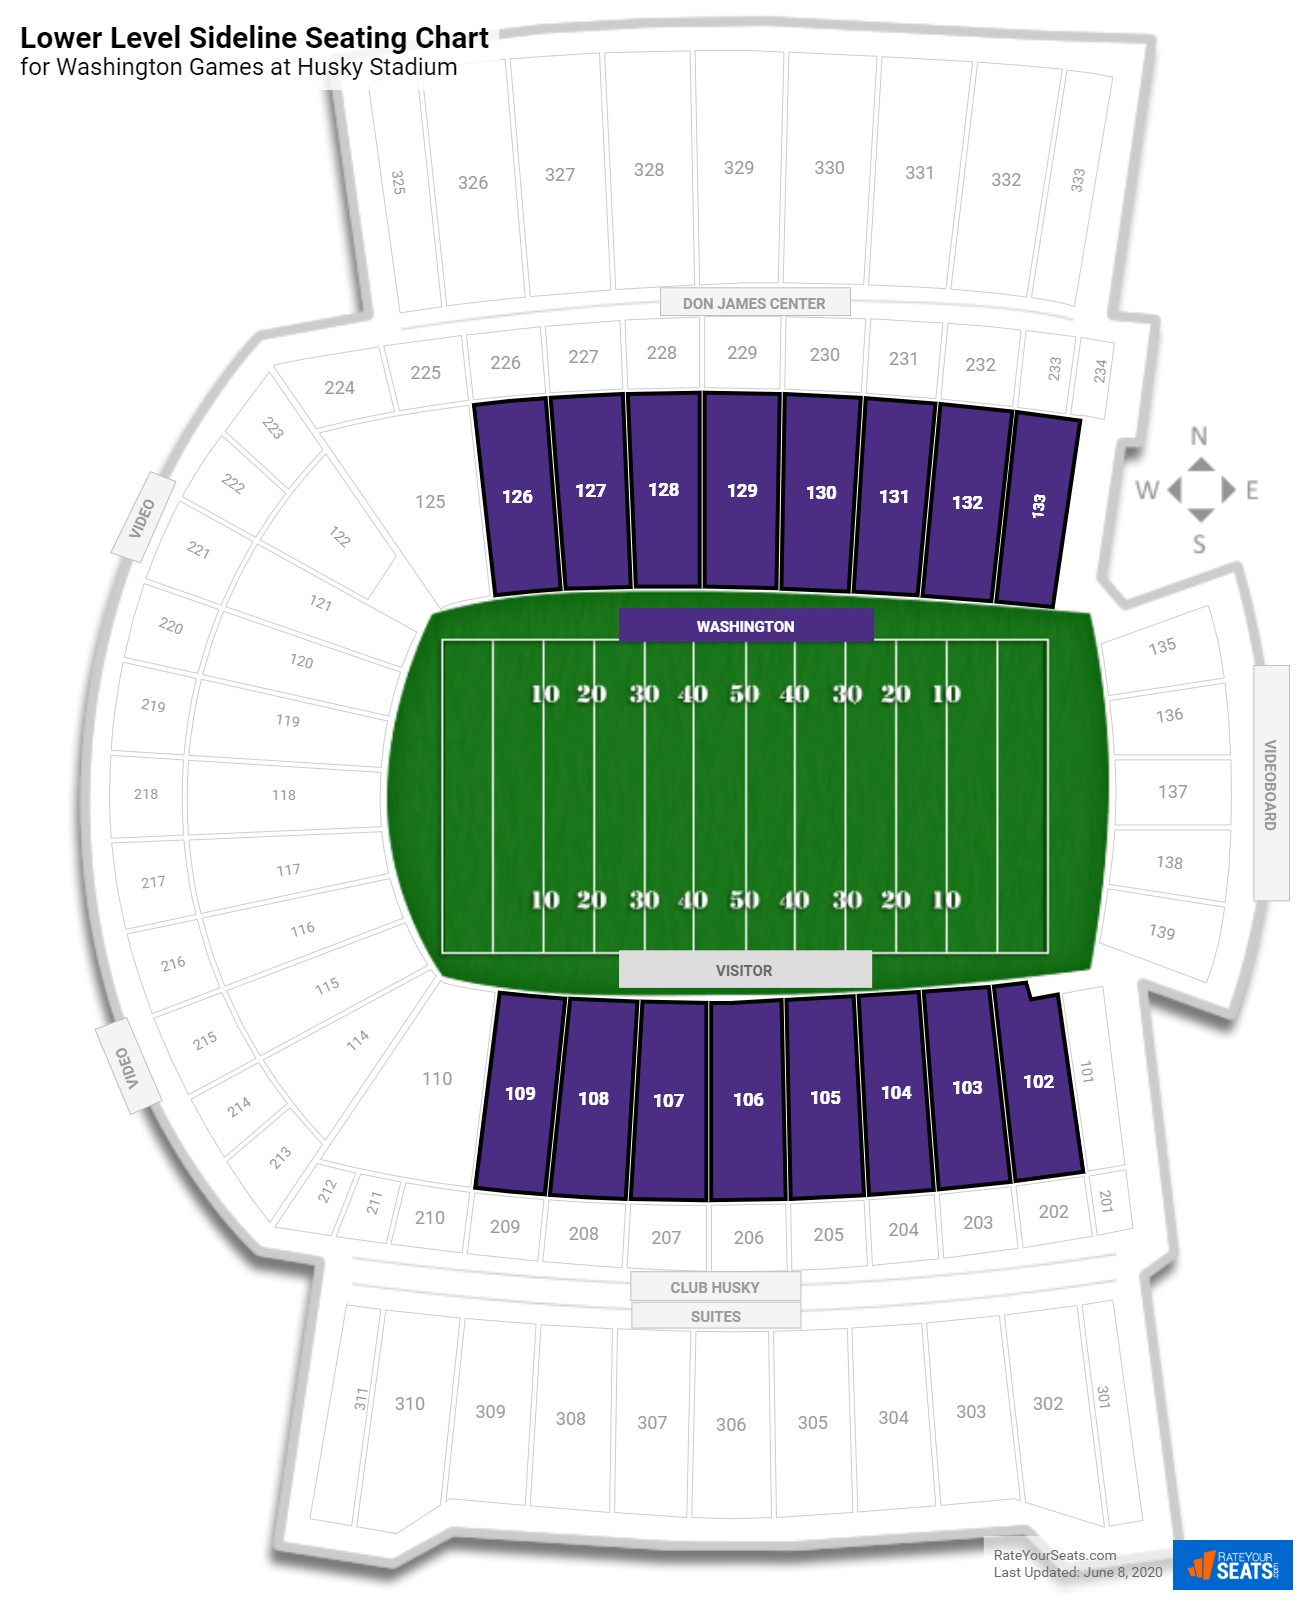 Husky Stadium Lower Level Sideline seating chart